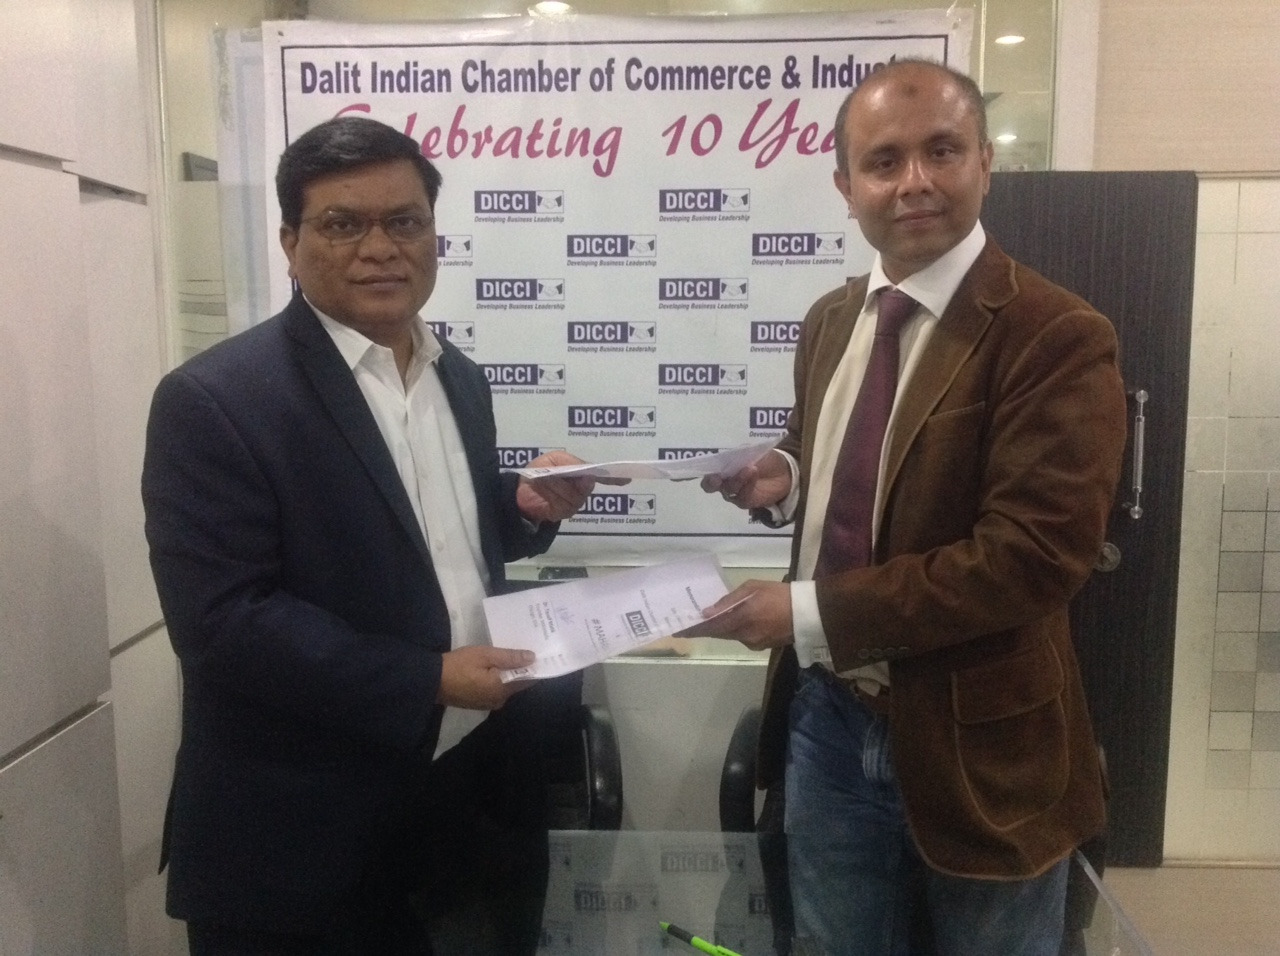 Milind Kamble, Founder & Chairman, DICCI (left) with Dr Tausif Malik.